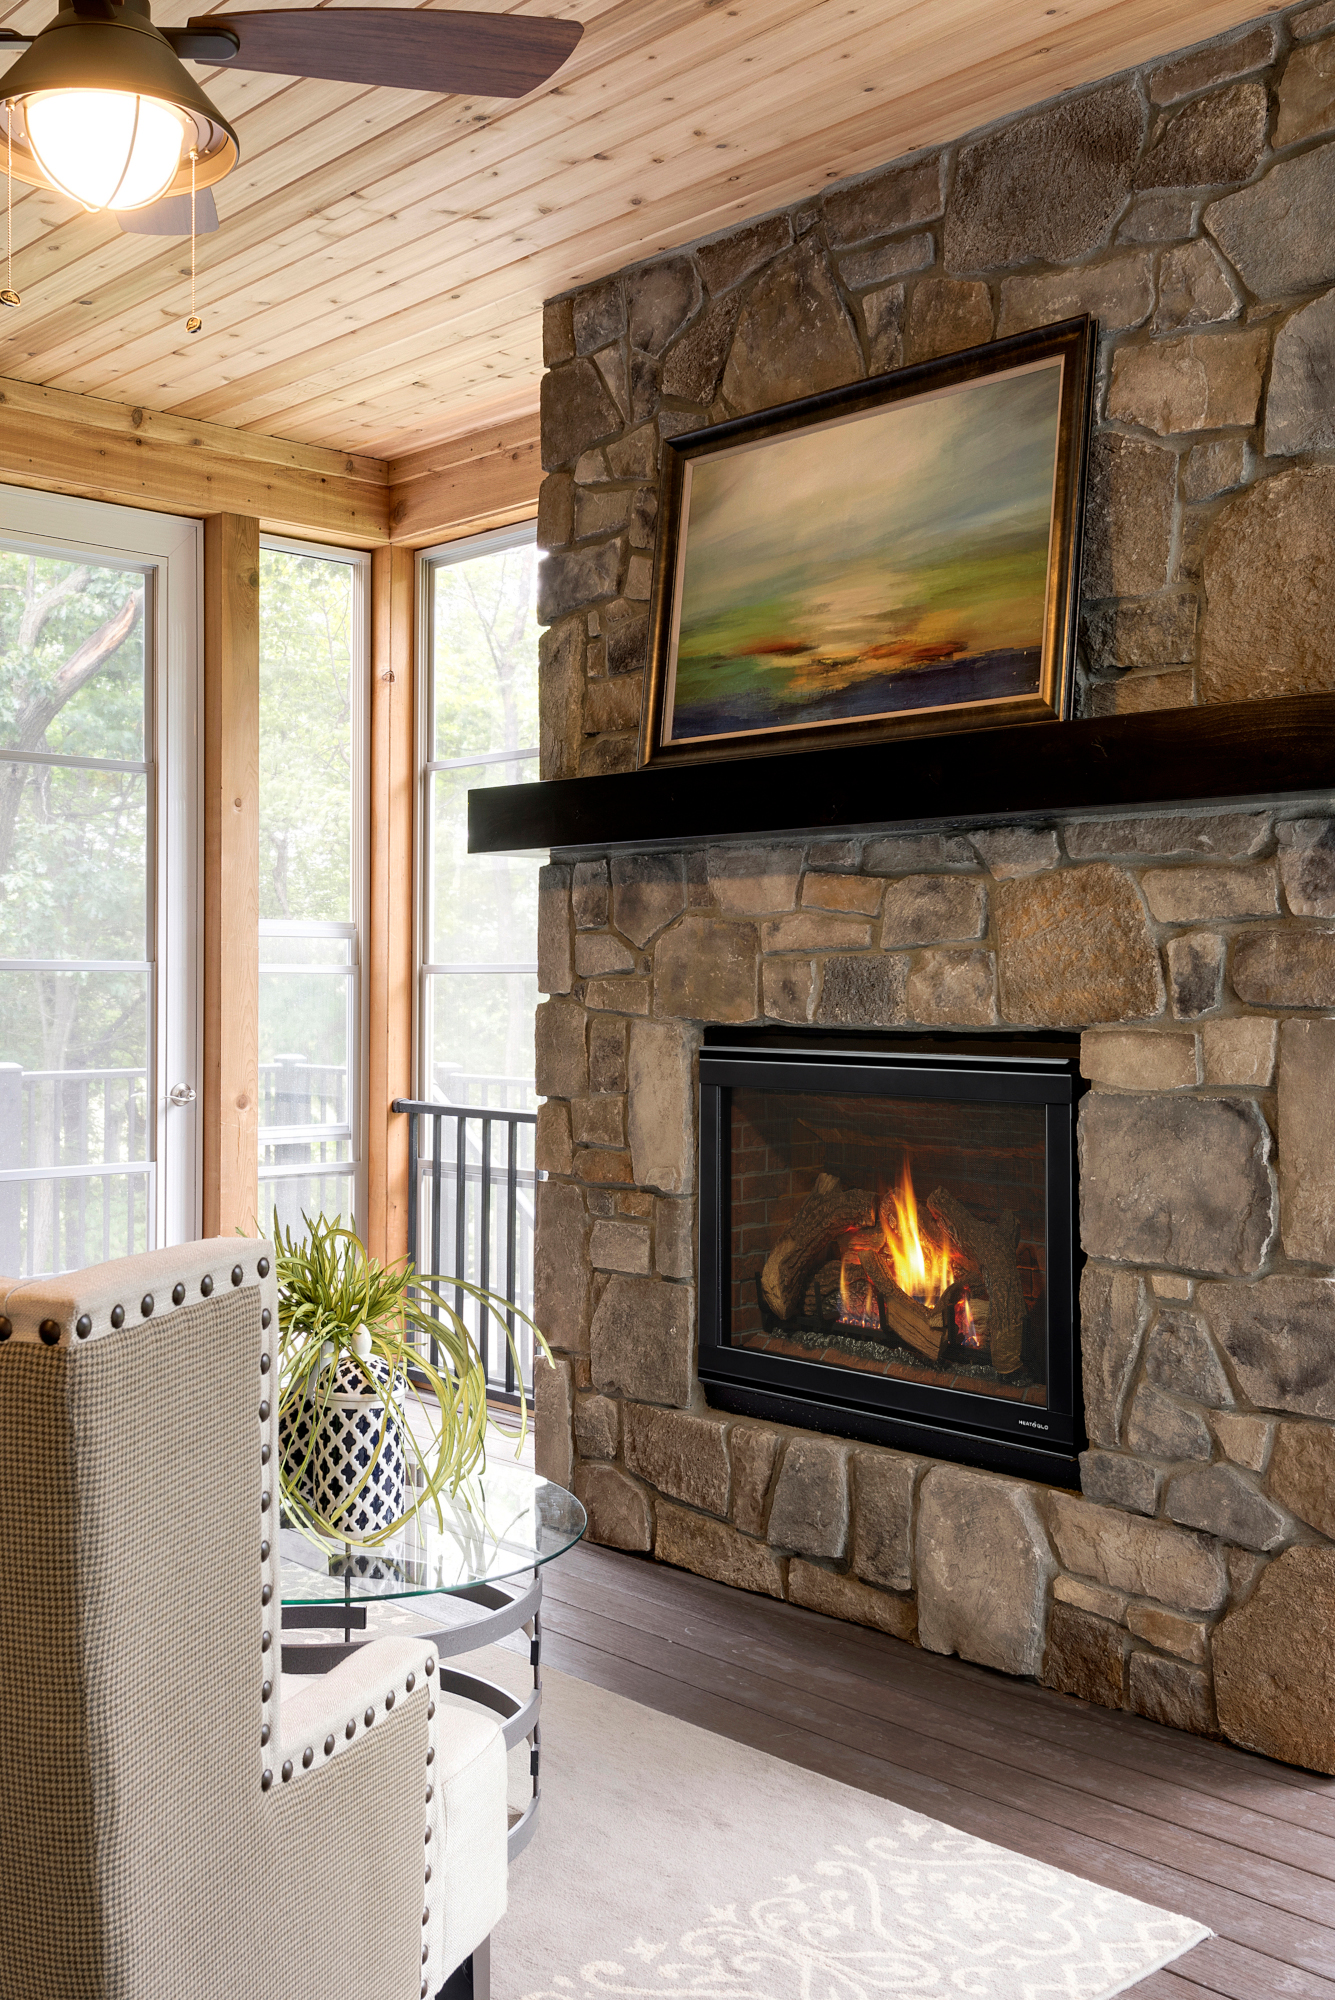 Gas Fireplace thermostats Inspirational Fireplace Gallery Haley fort Systems